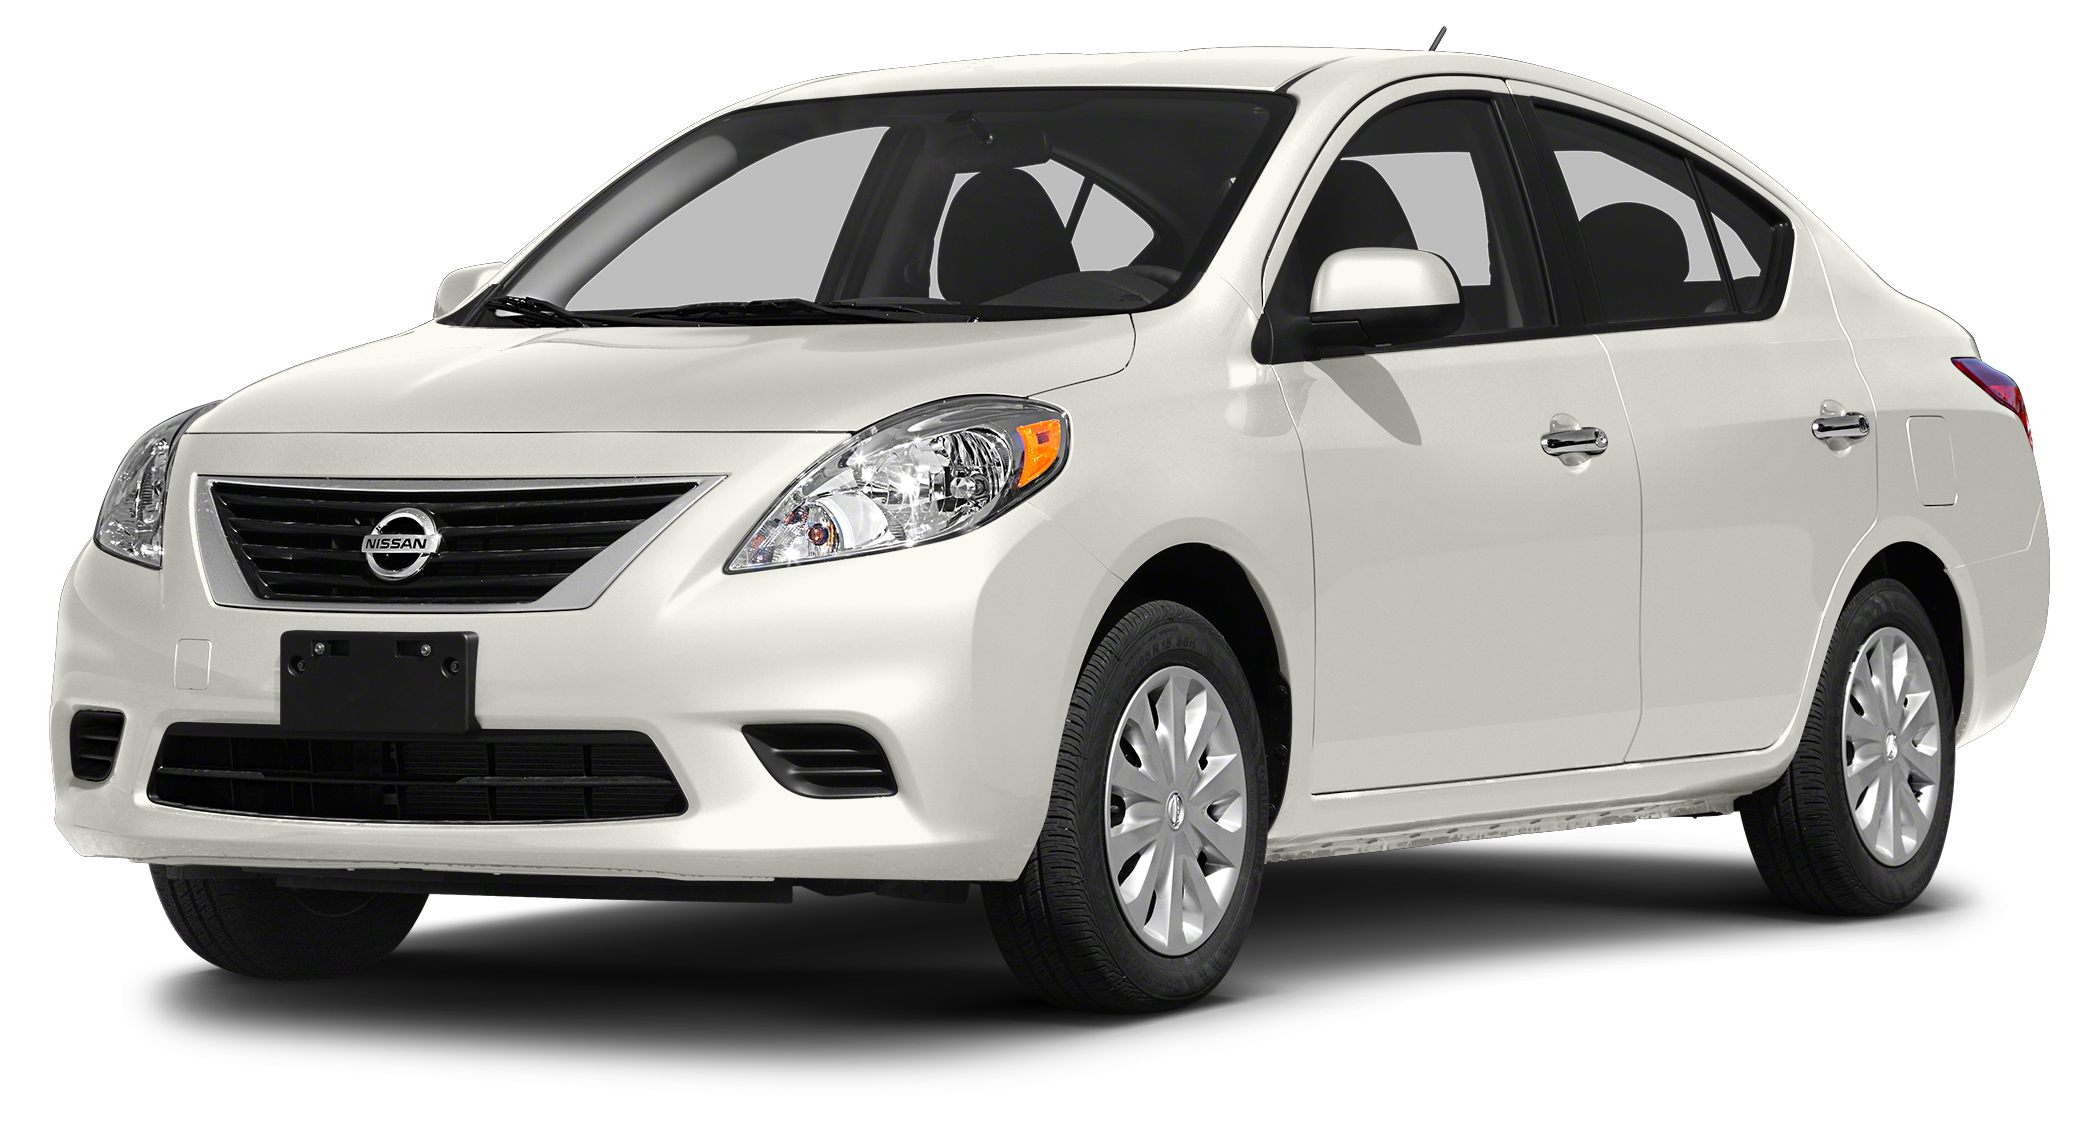 2014 Nissan Versa 16 S Miles 43384Color Fresh Powder Stock SB15126A VIN 3N1CN7AP7EL853026